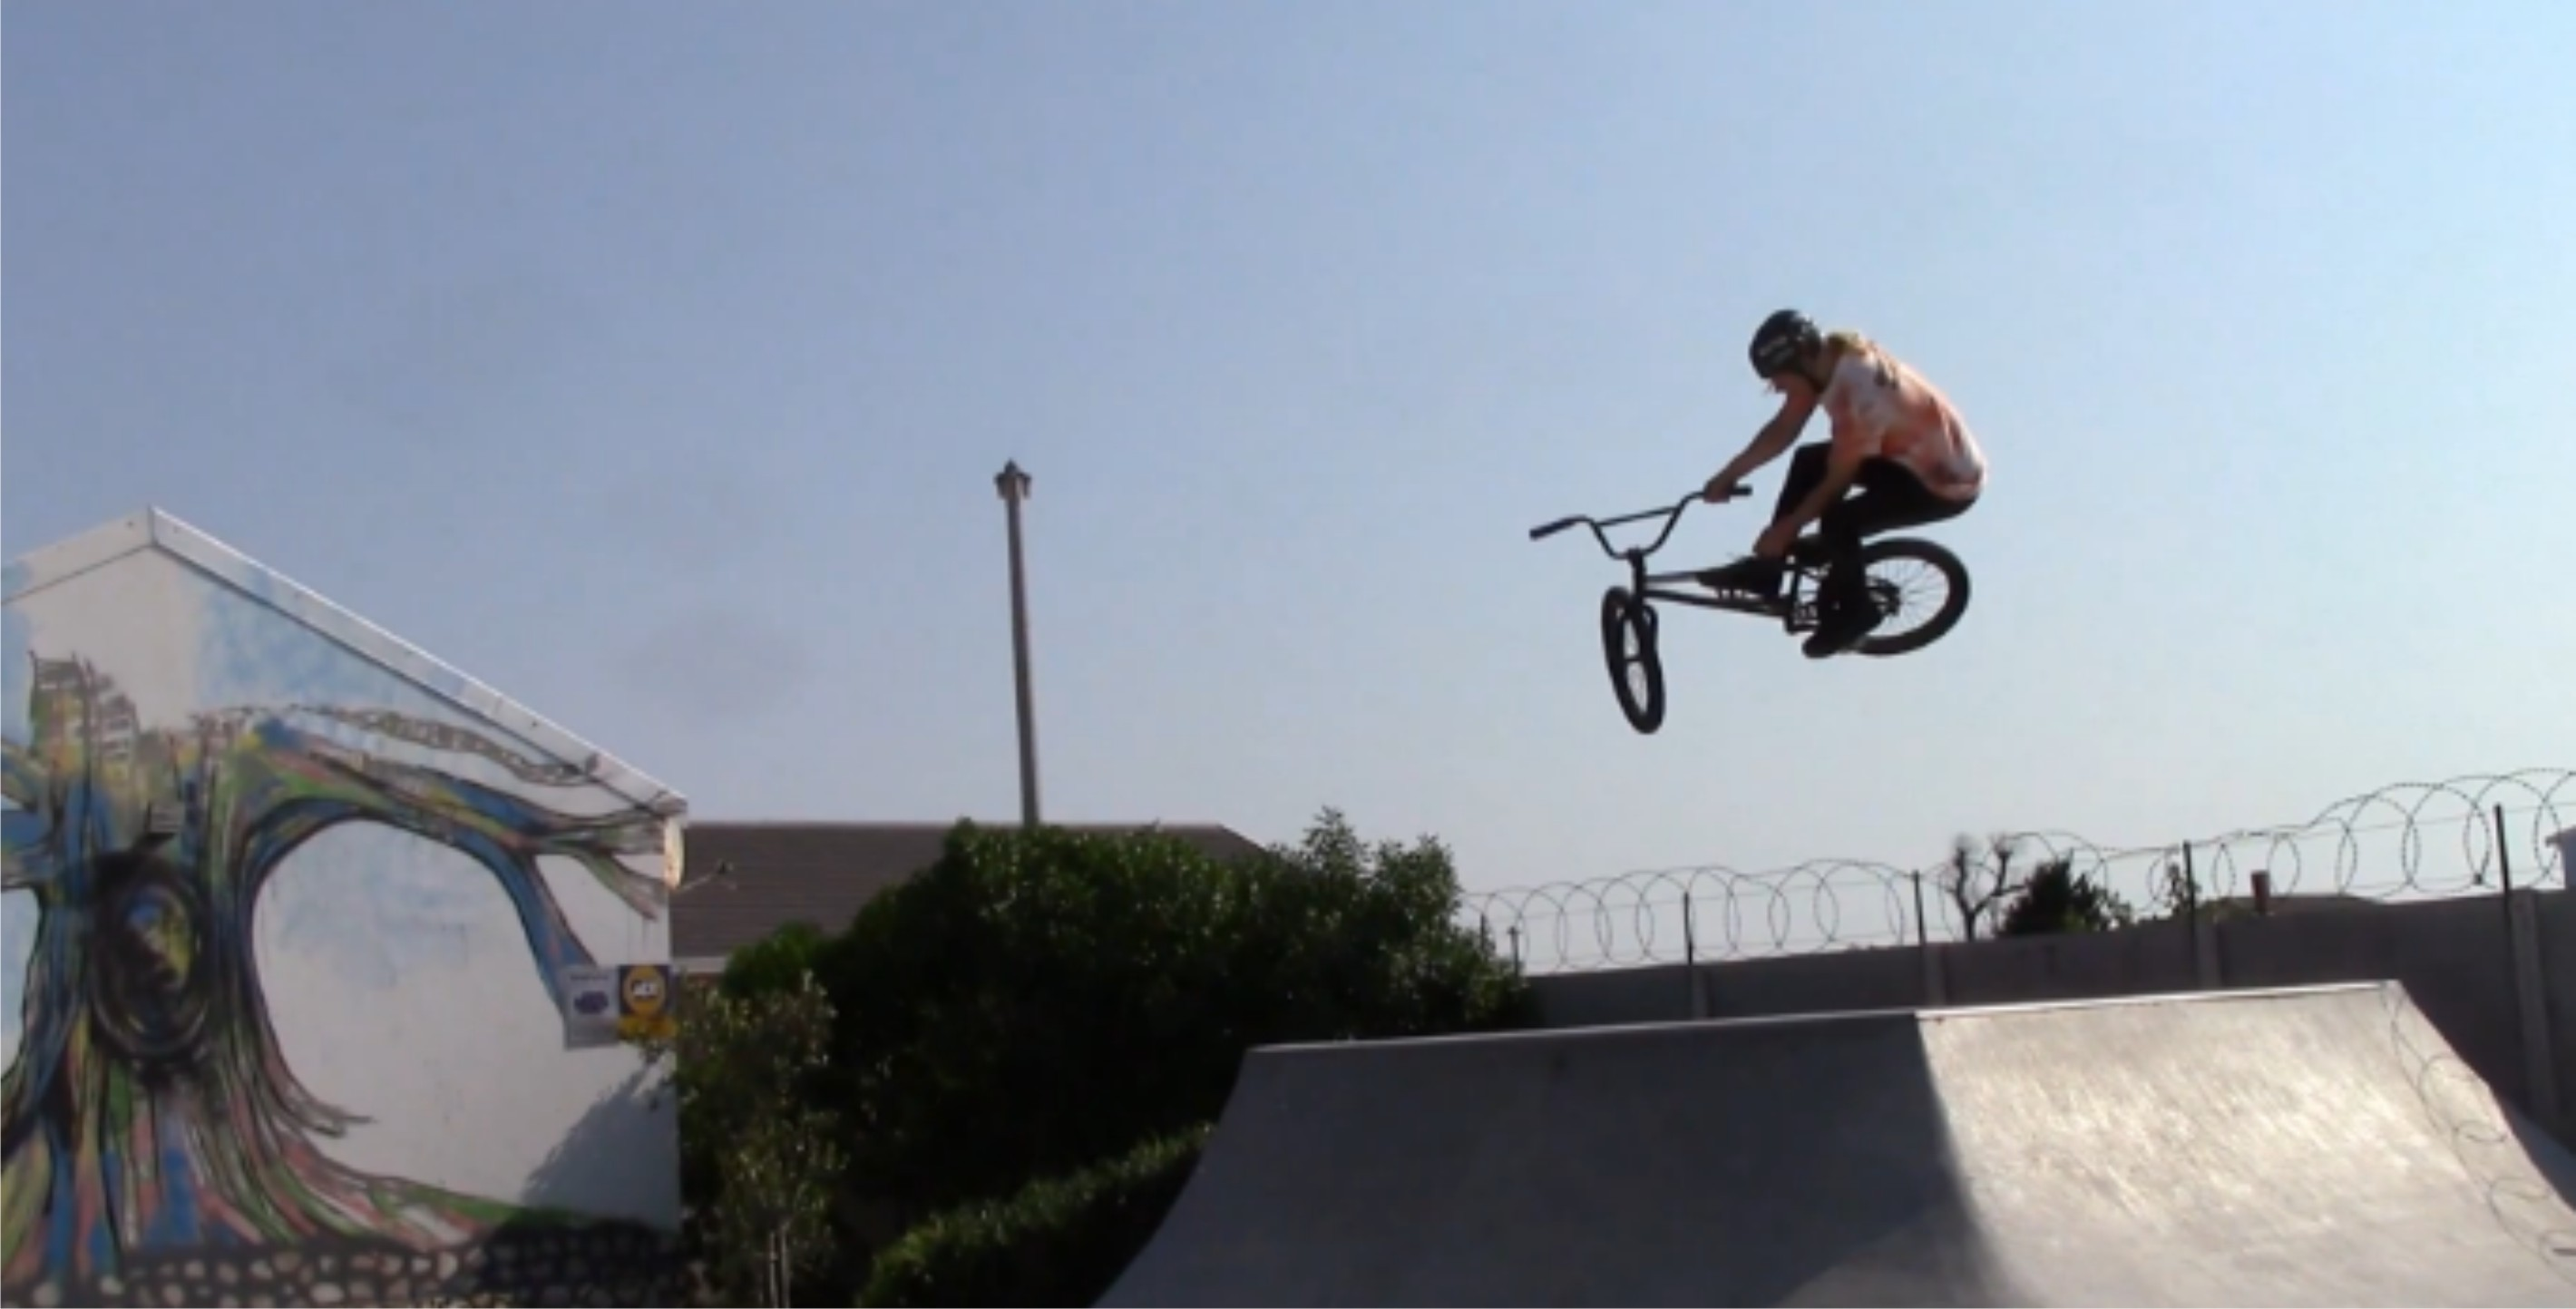 Morgan O'Kennedy and Murray Loubser Langebaan BMX Mission video